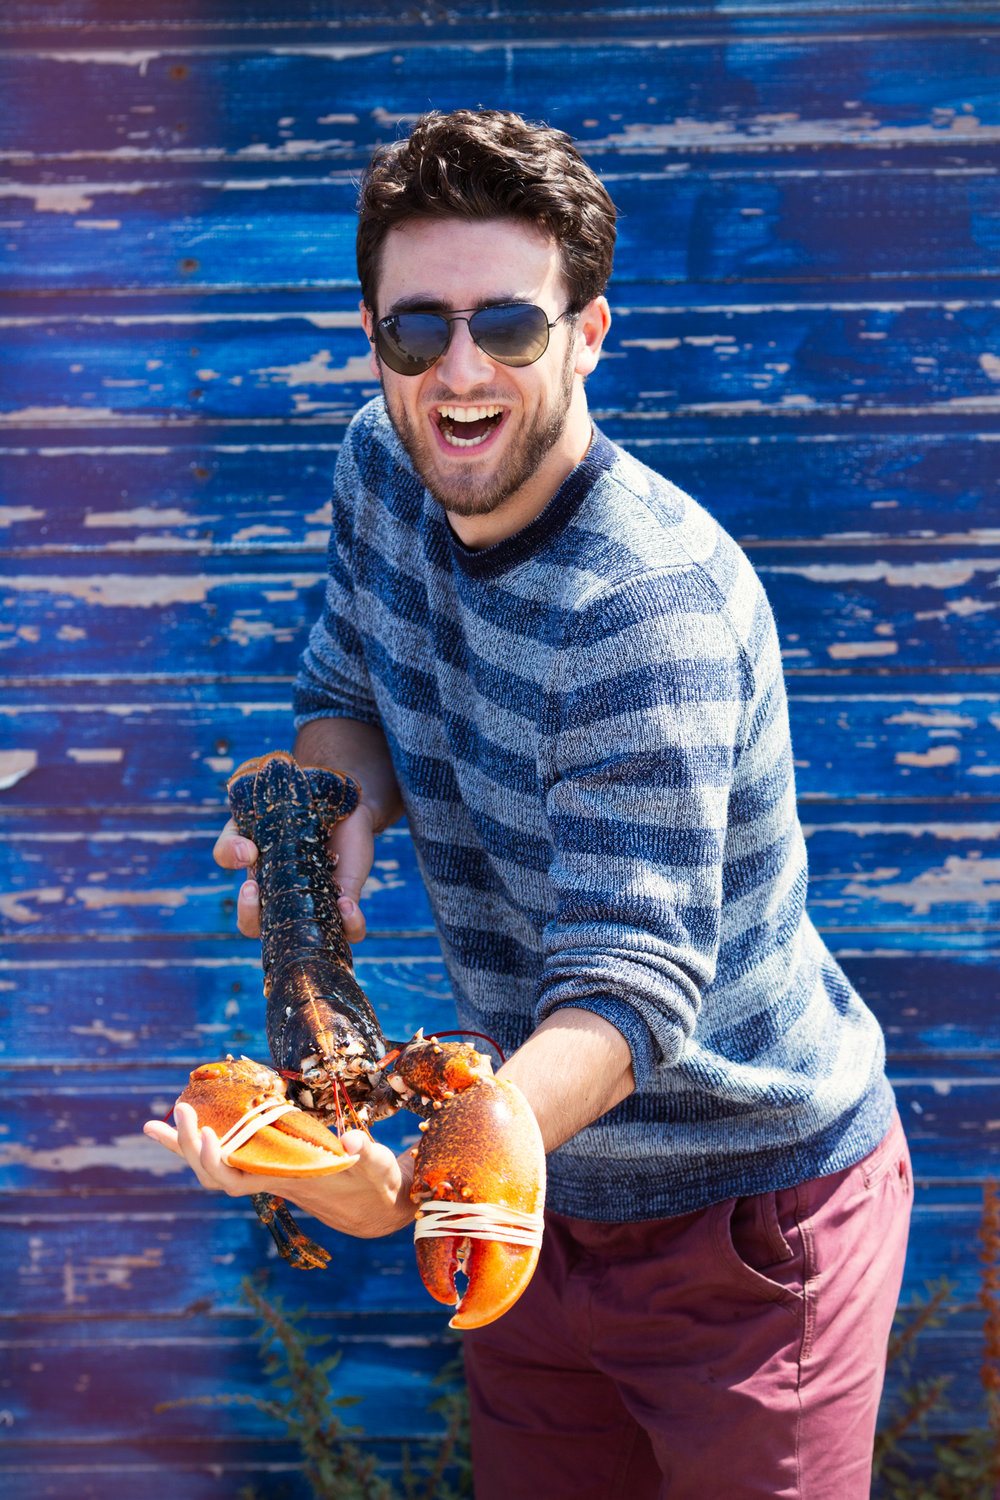 Isaac getting to grips with a lively lobster.